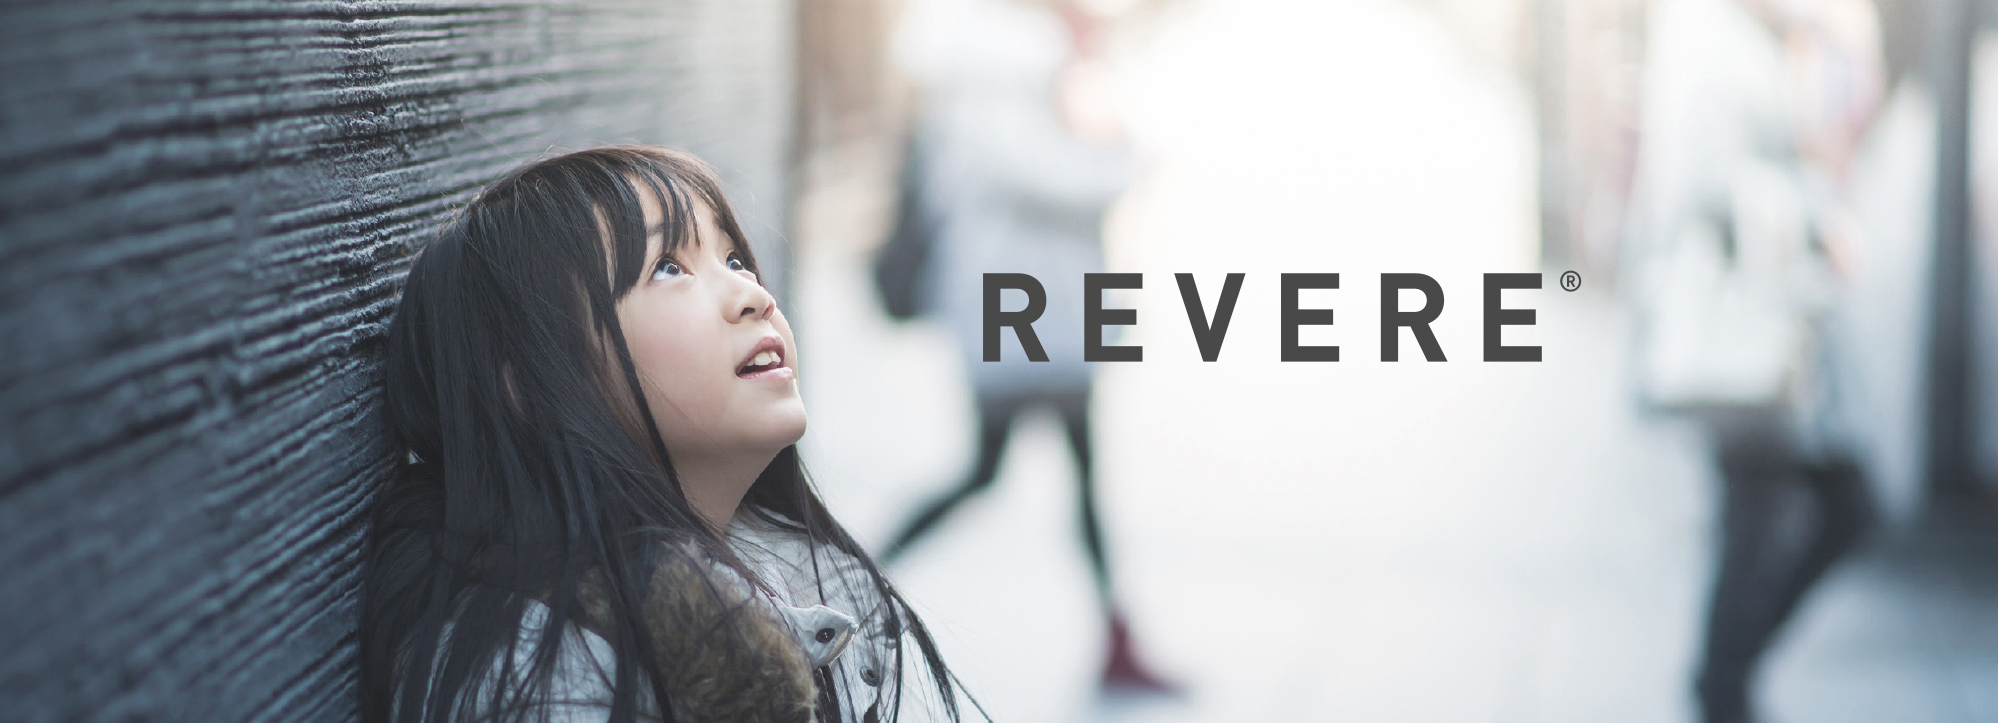 Revere. Where marketing transforms business